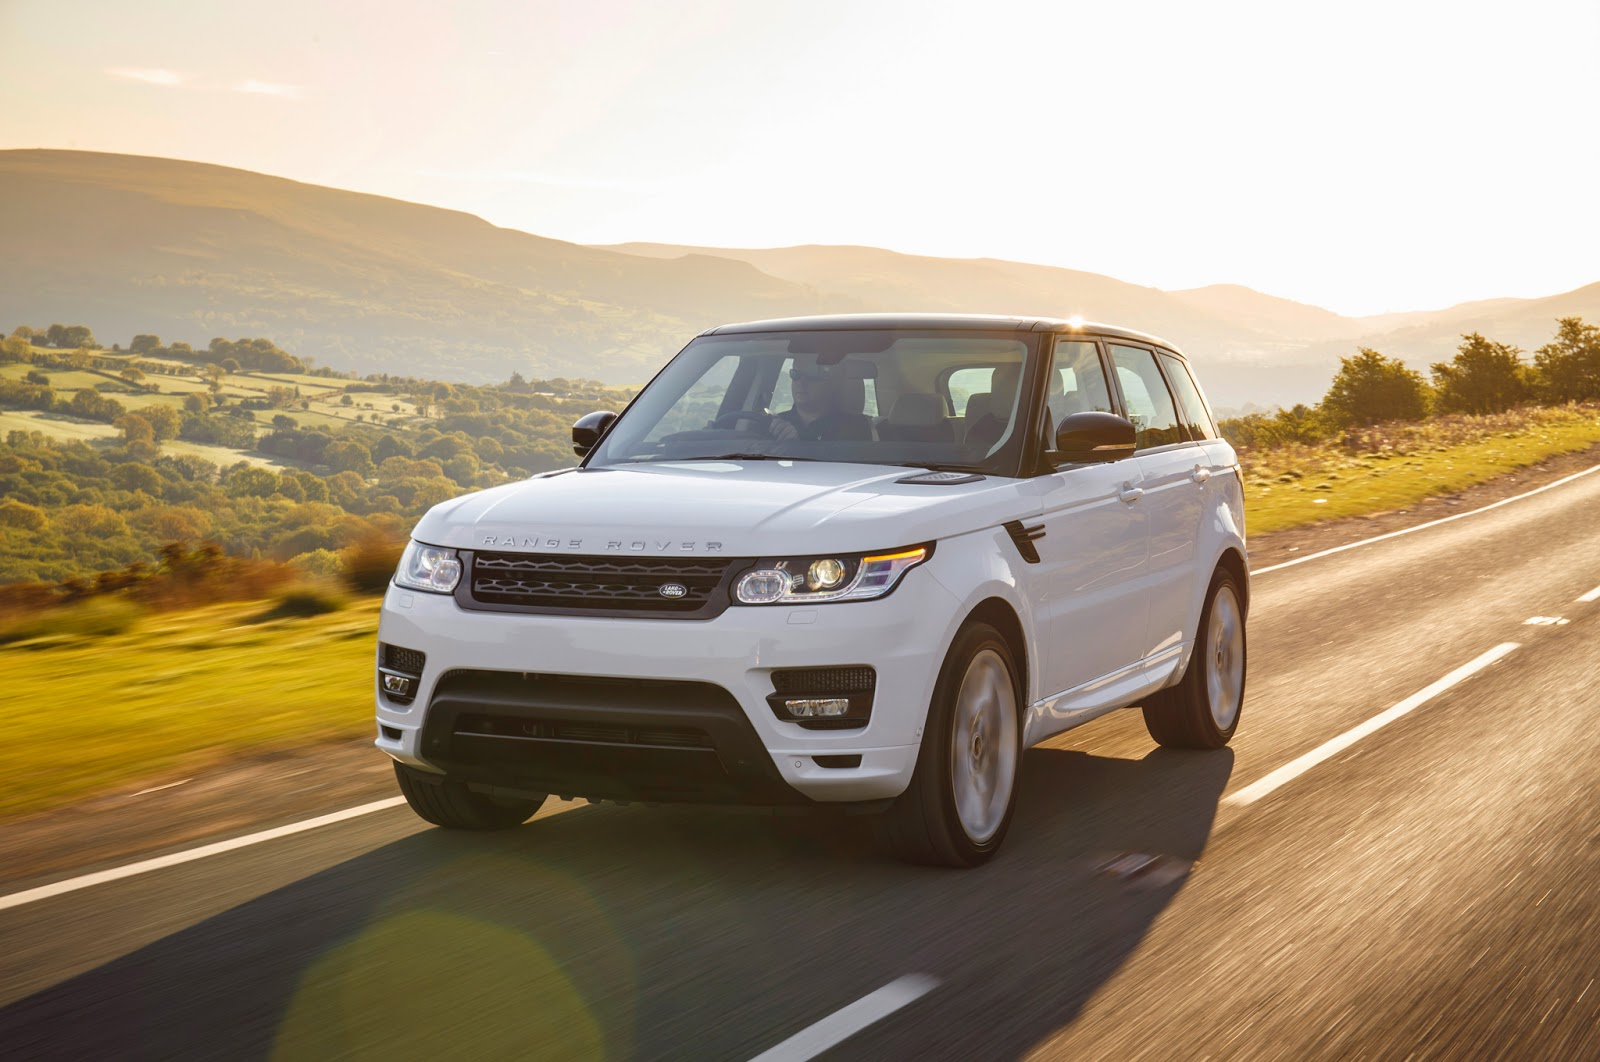 Land Rover Range Rover Sport Front View Image